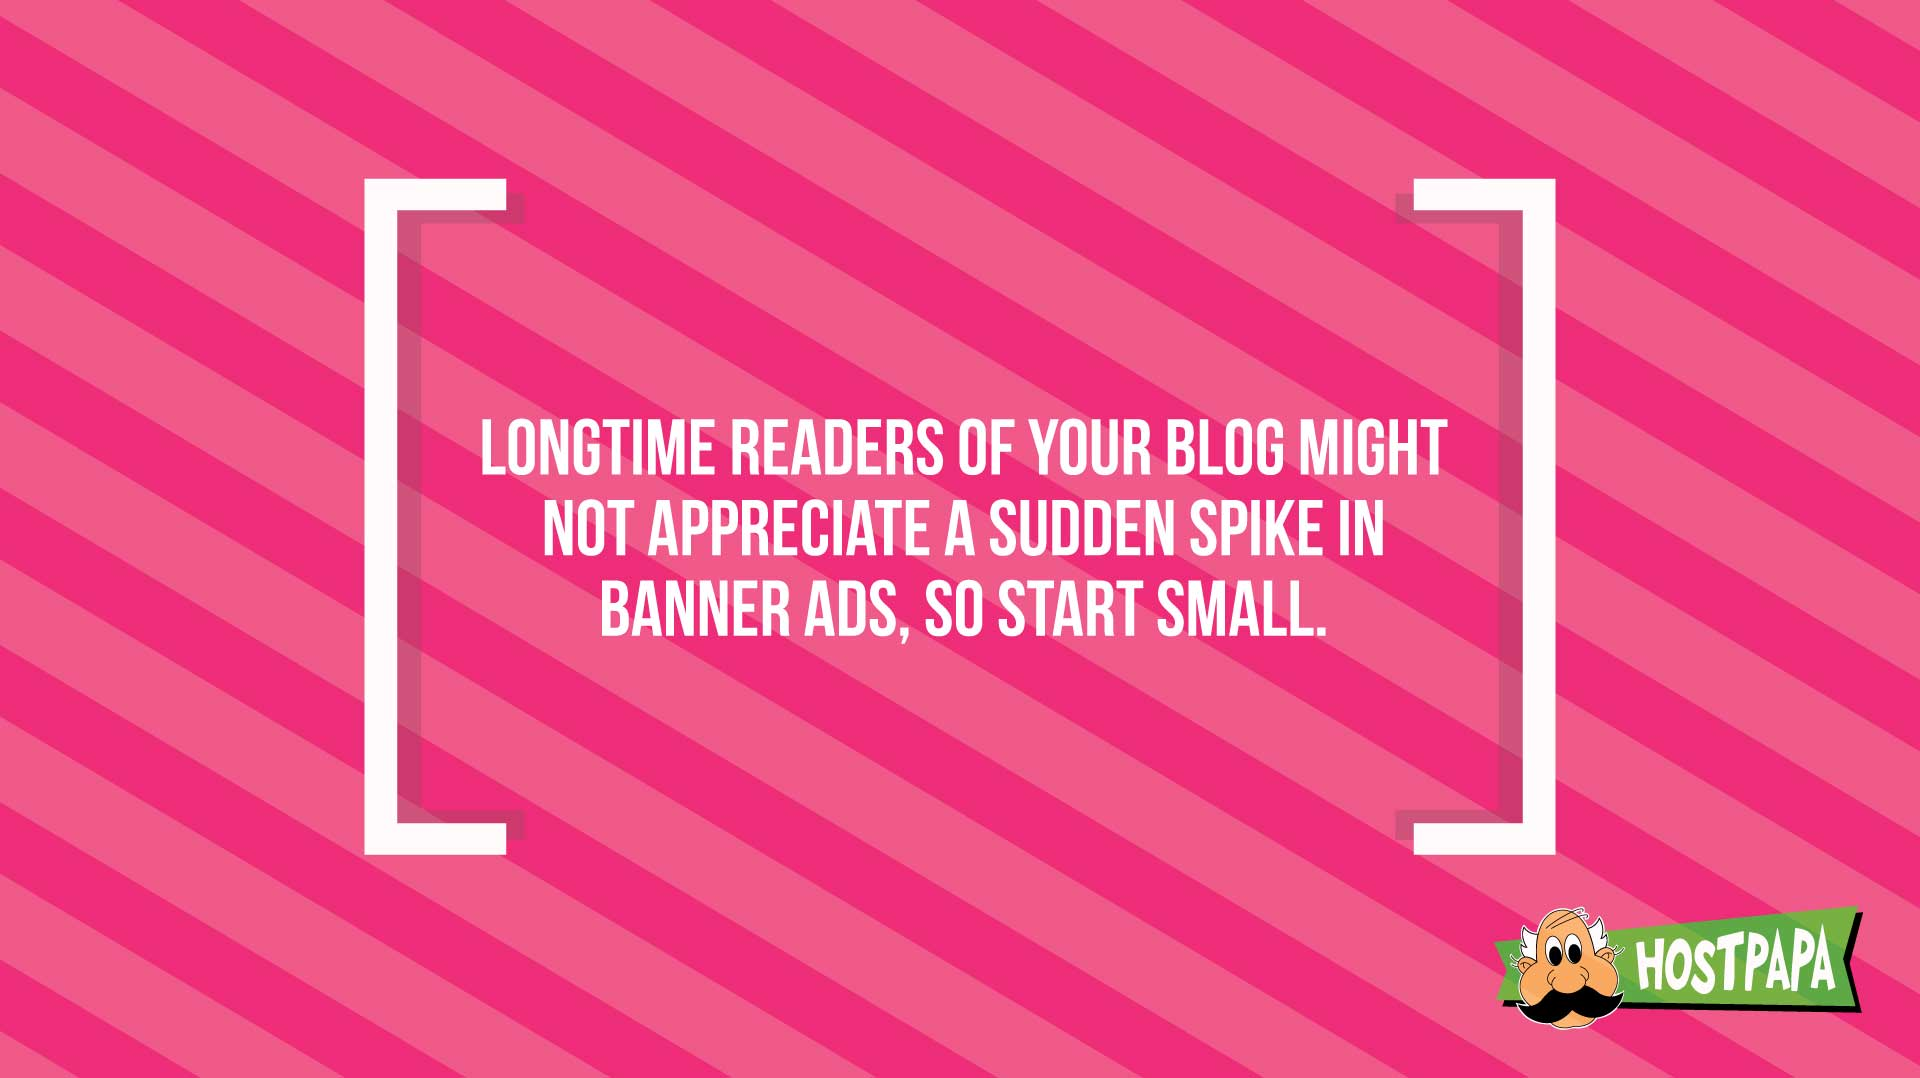 Longtime readers of your blog might not appreciate a sudden spike in banner ads